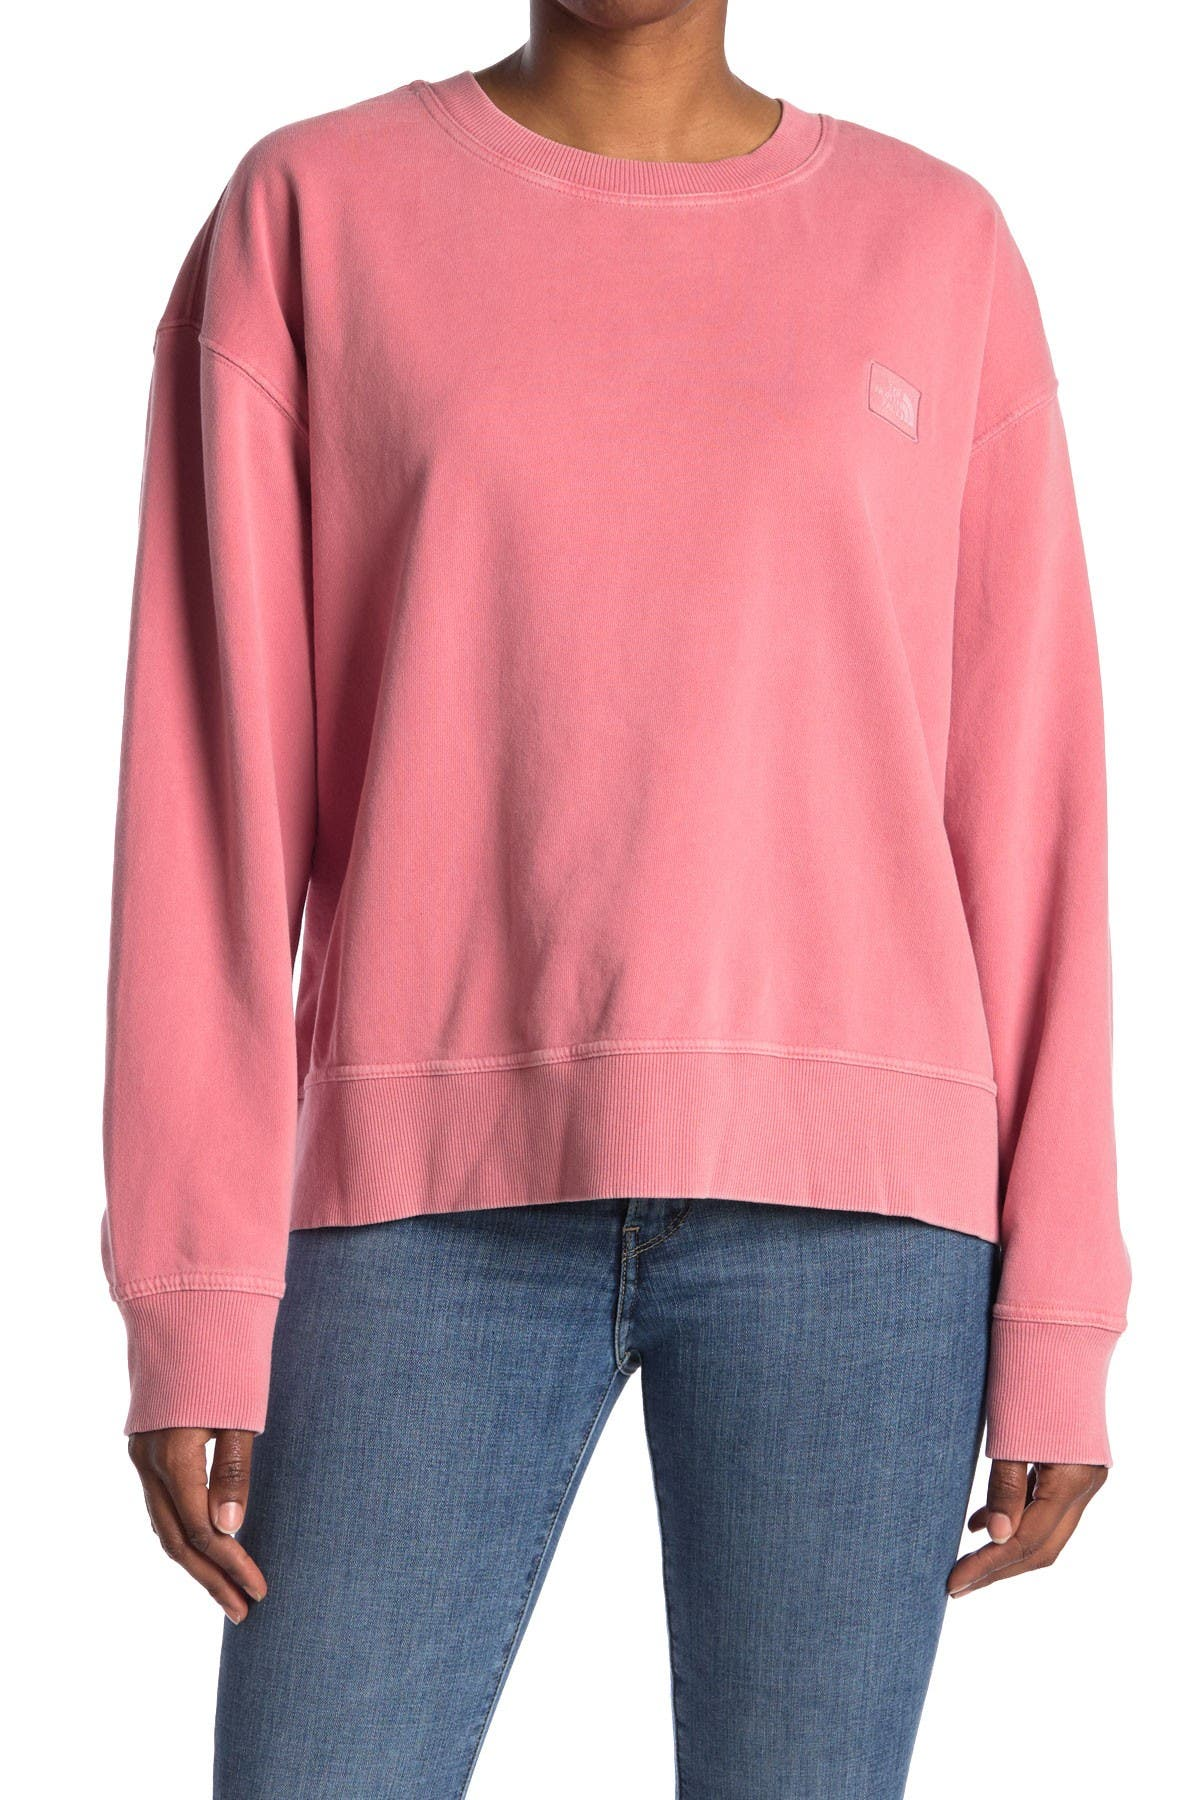 Image of The North Face Bekeley Crew Neck Pullover Sweatshirt